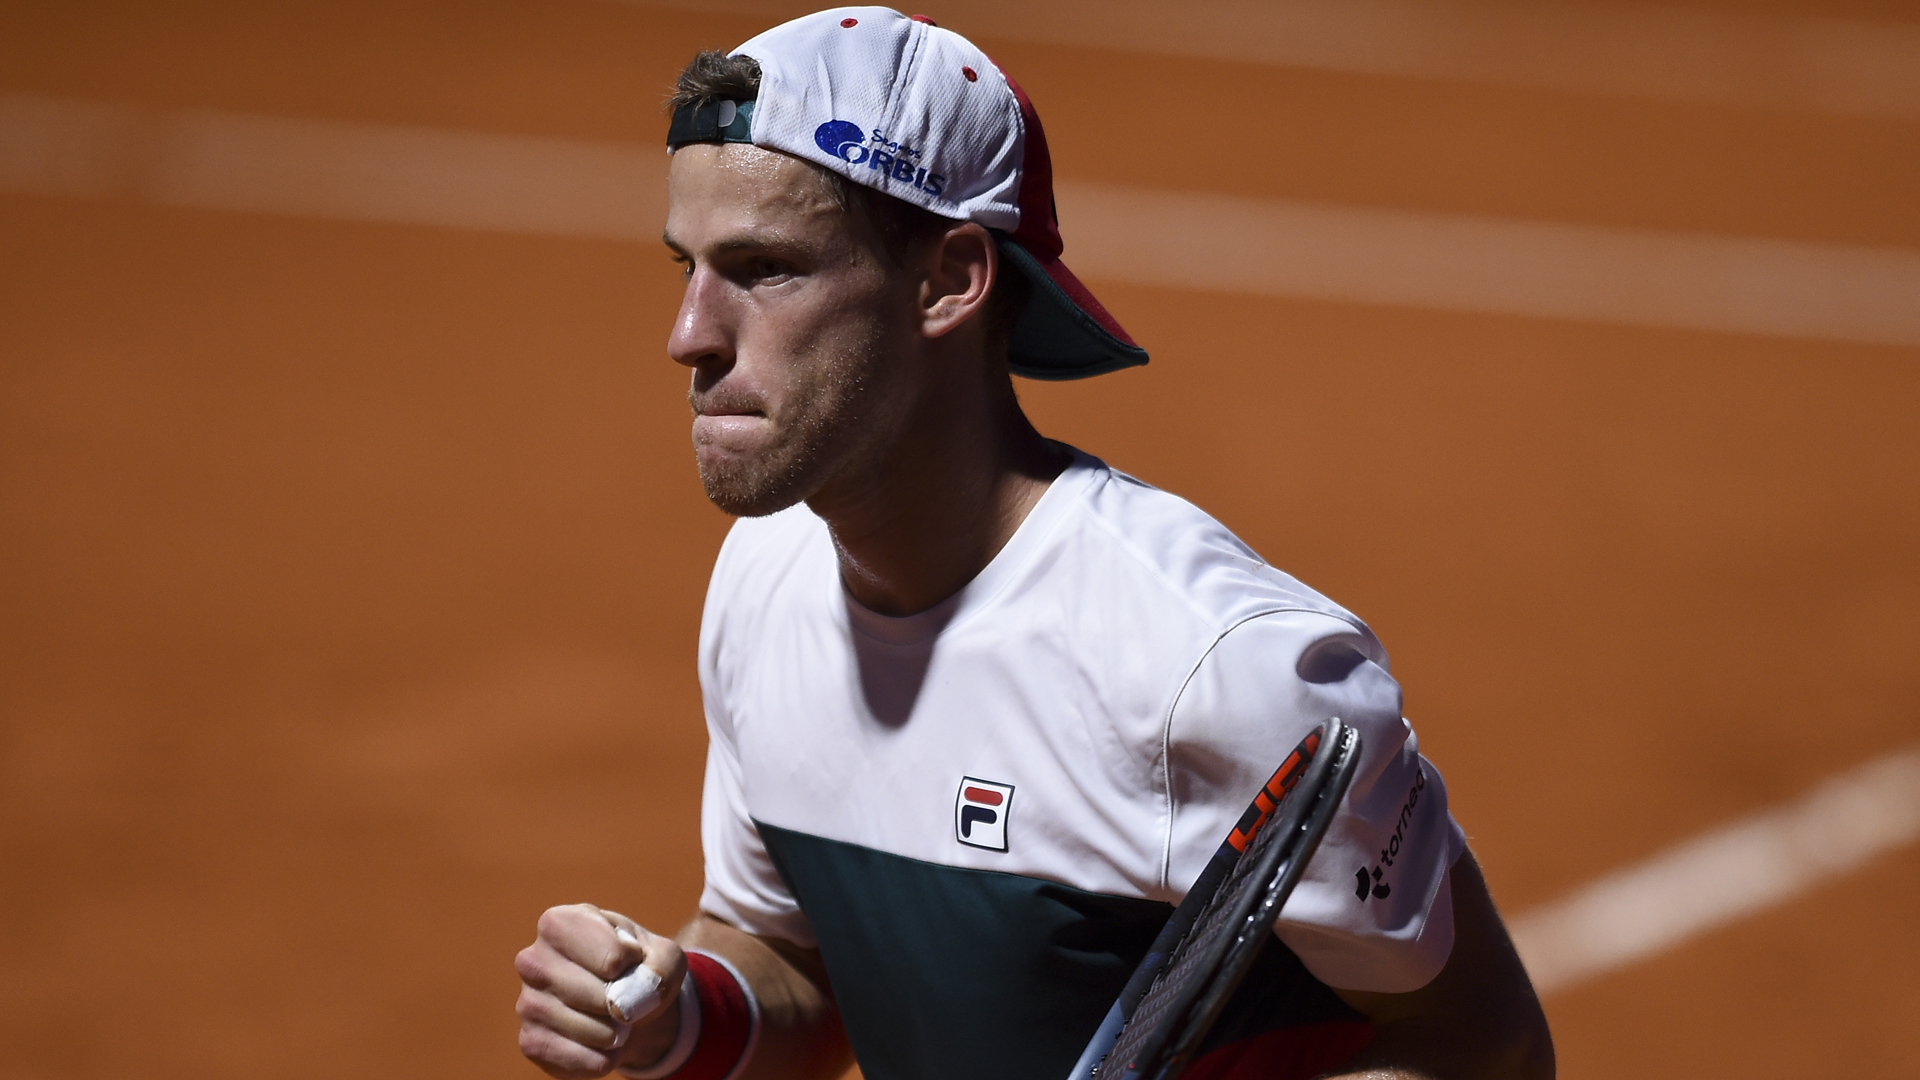 Schwartzman survives epic against Cuevas, Opelka's title defence over in New York